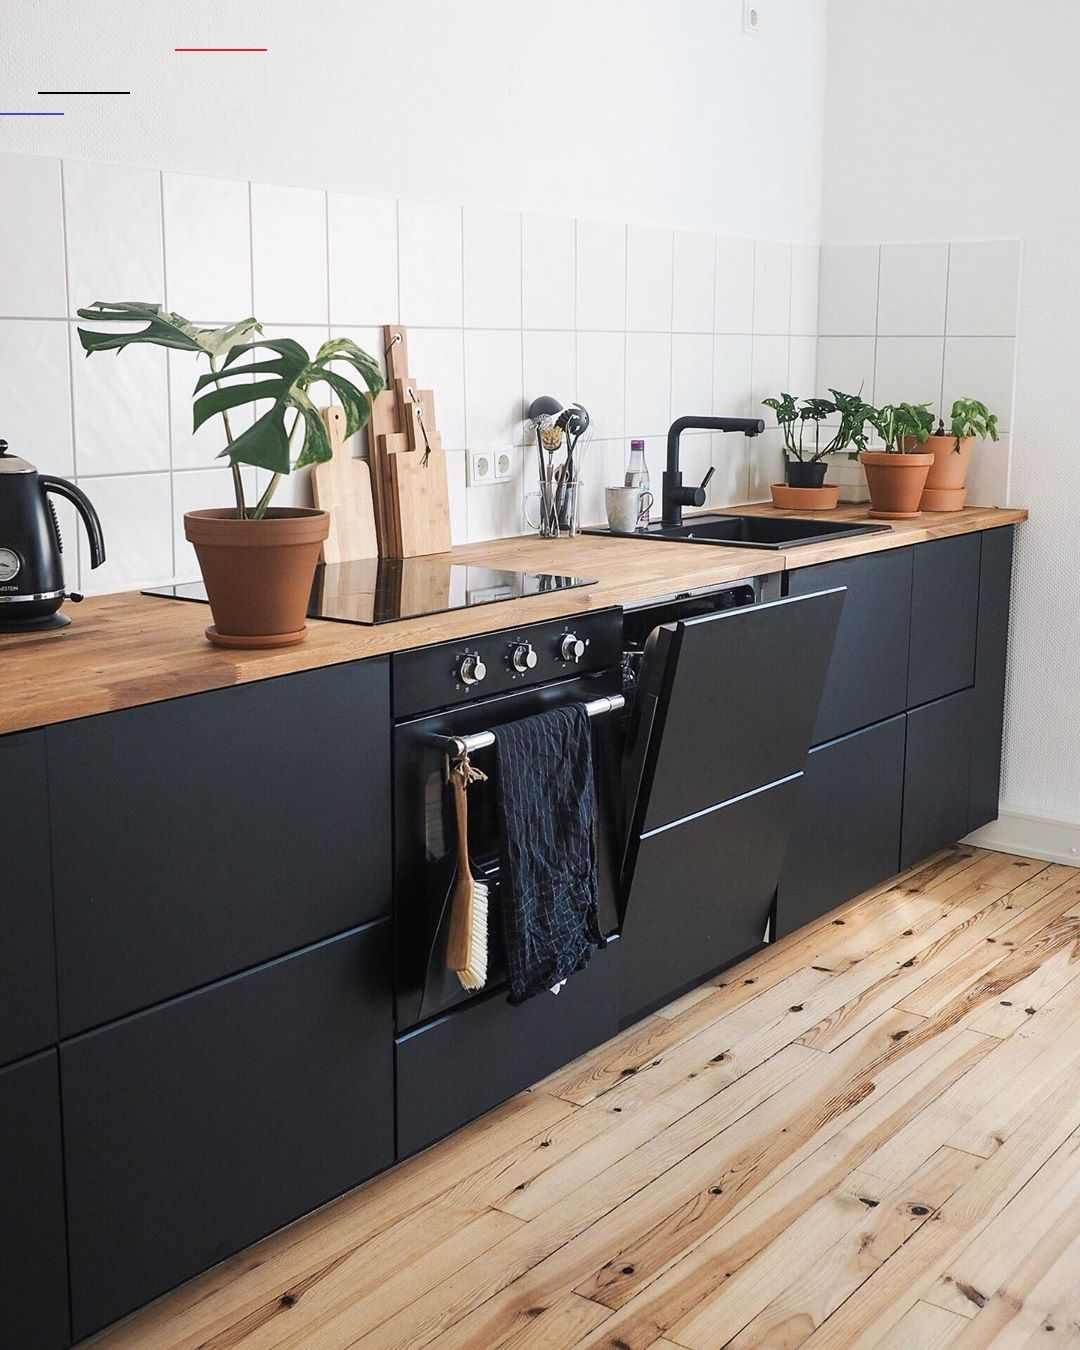 ikeakeuken in 2020 Kitchens without upper